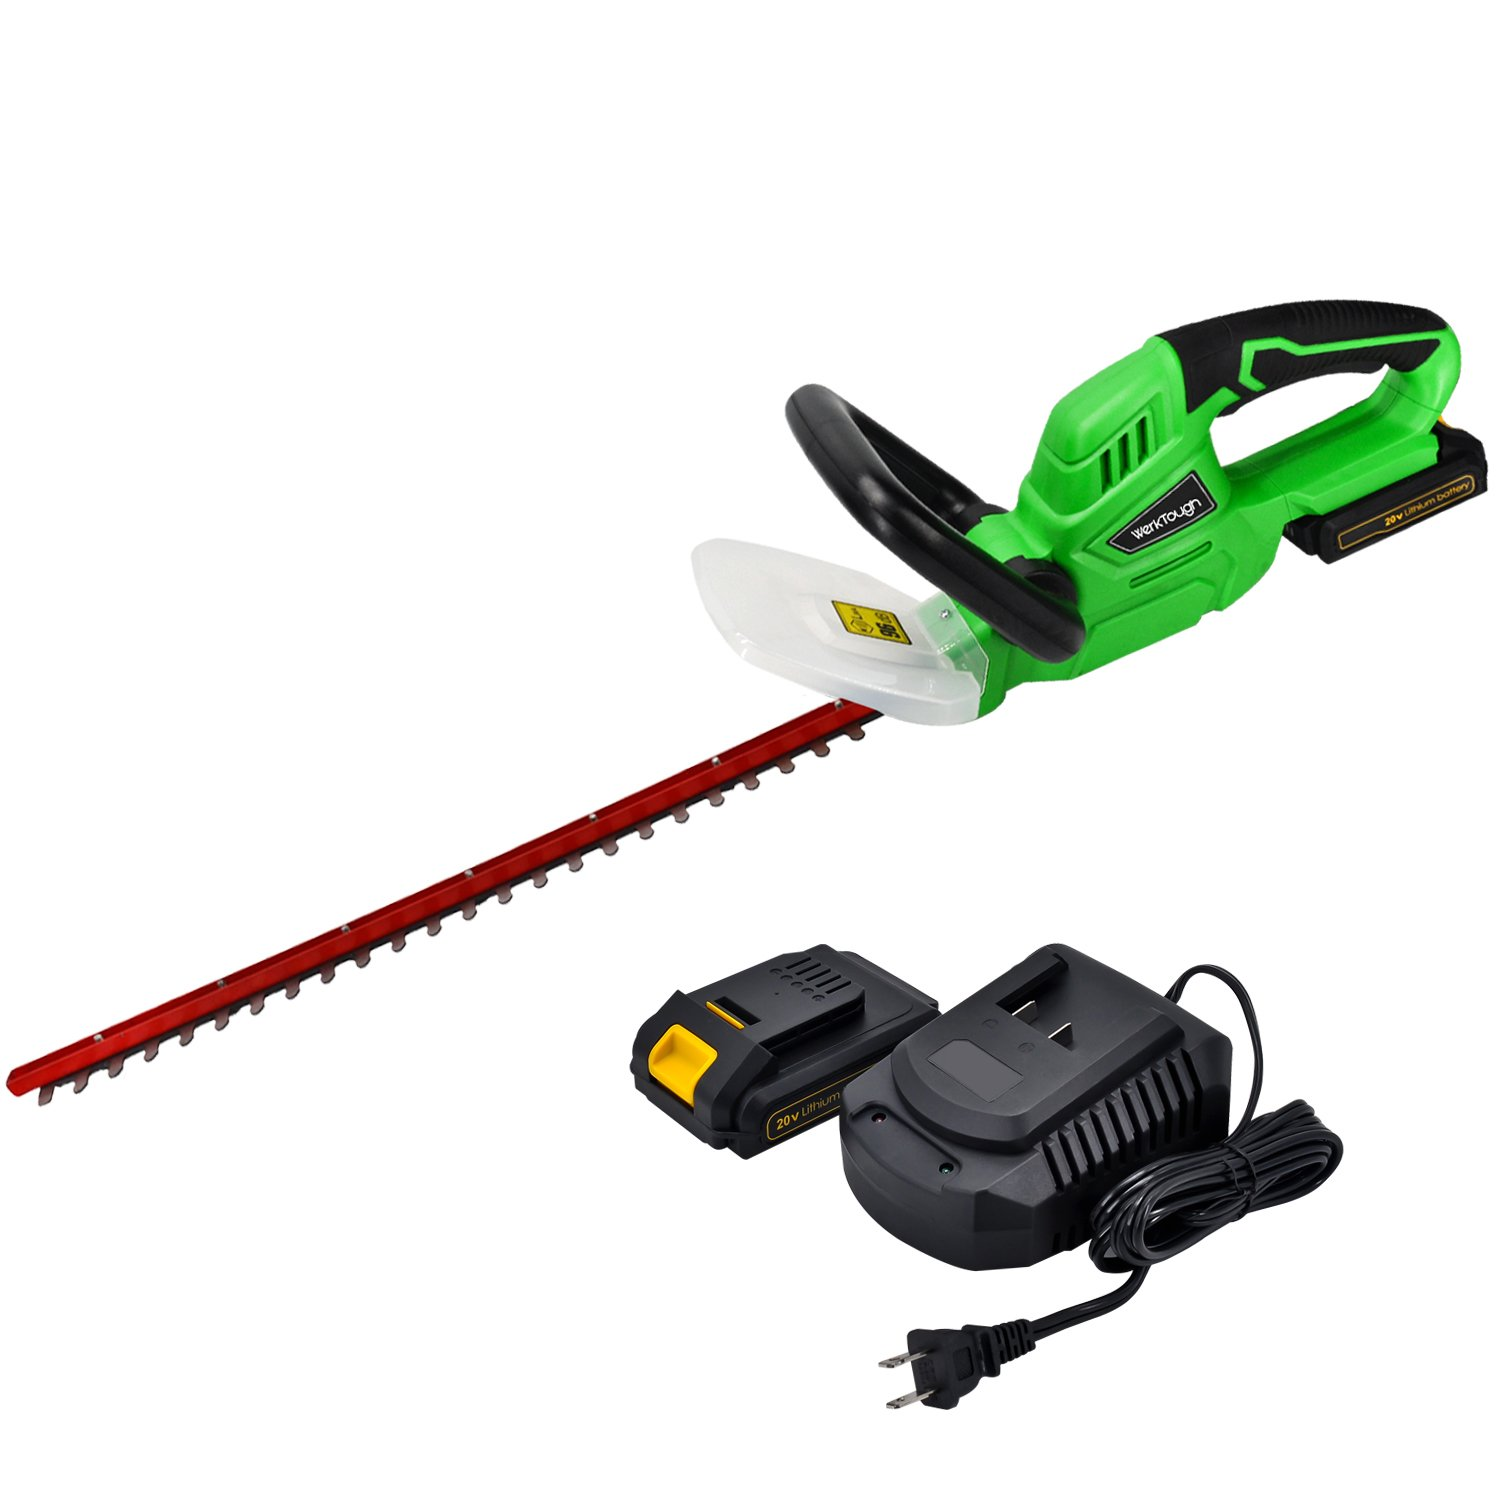 Werktough HT001 20V Li-ion Cordless Hedge Trimmer,2.0 AH Battery Charger Included